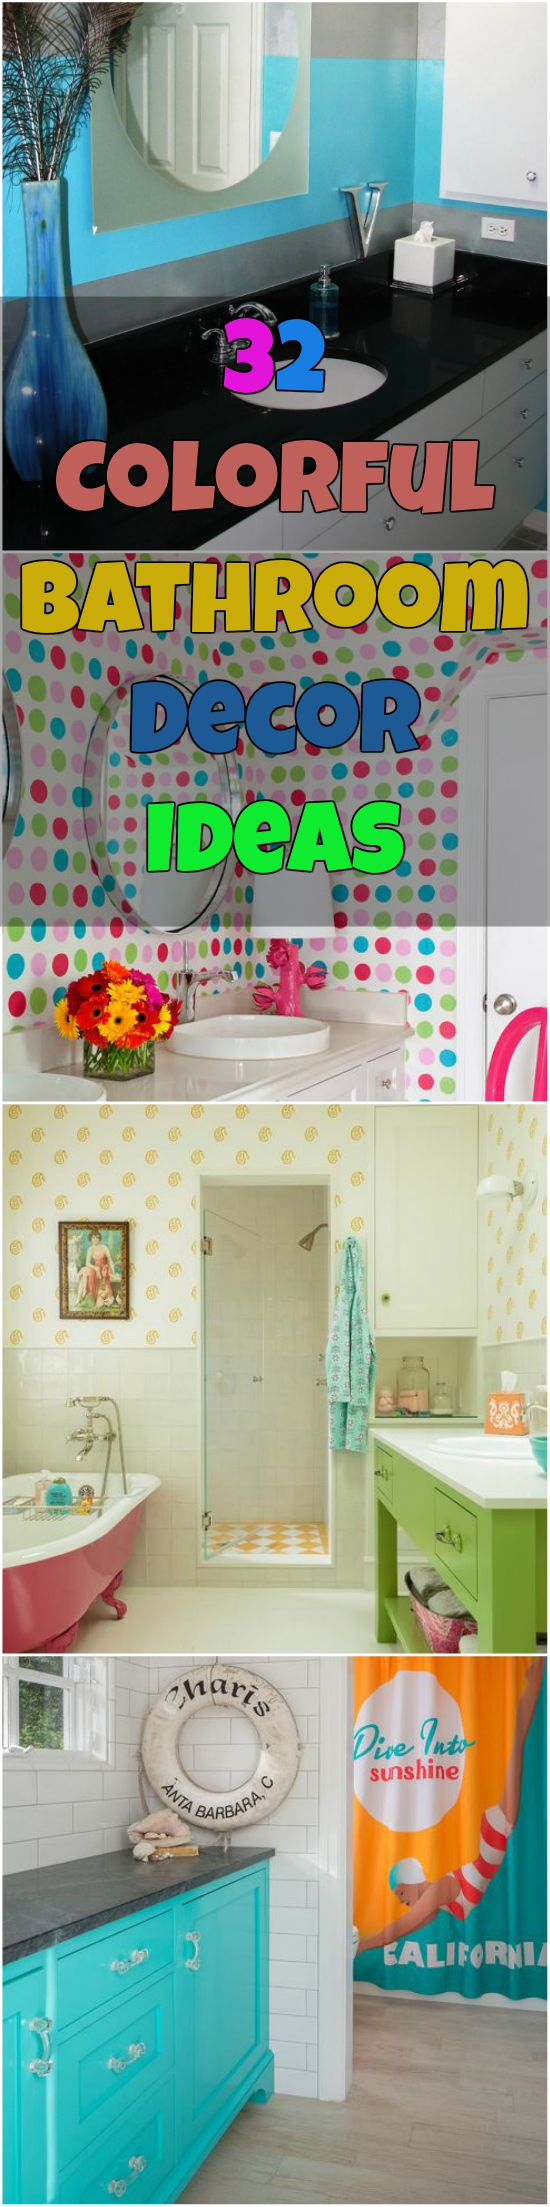 32 Colorful Bathroom Decor Ideas